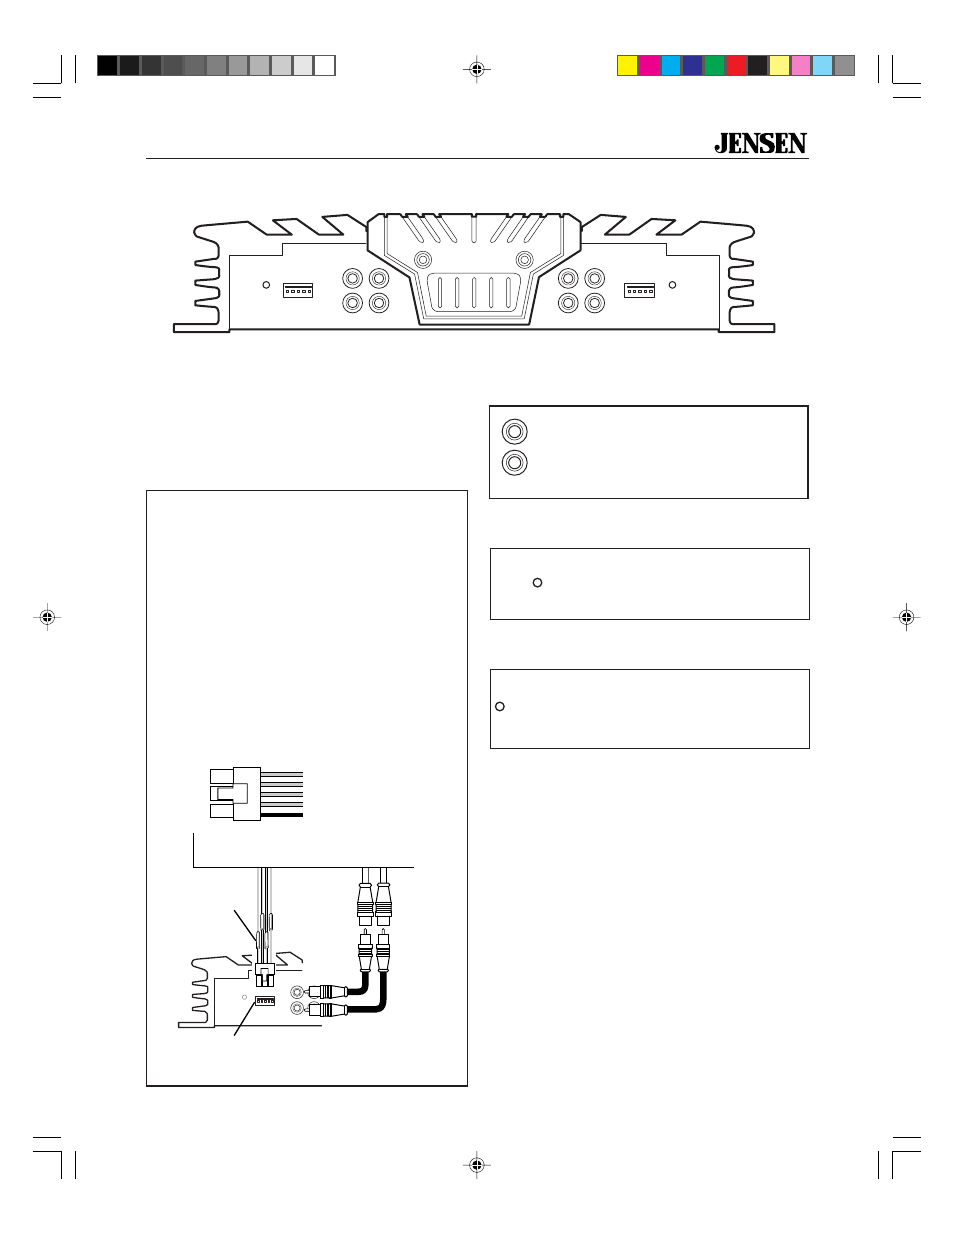 Peachy Inputs And Controls Input Wiring Power Light Jensen Xa4150 User Wiring 101 Capemaxxcnl